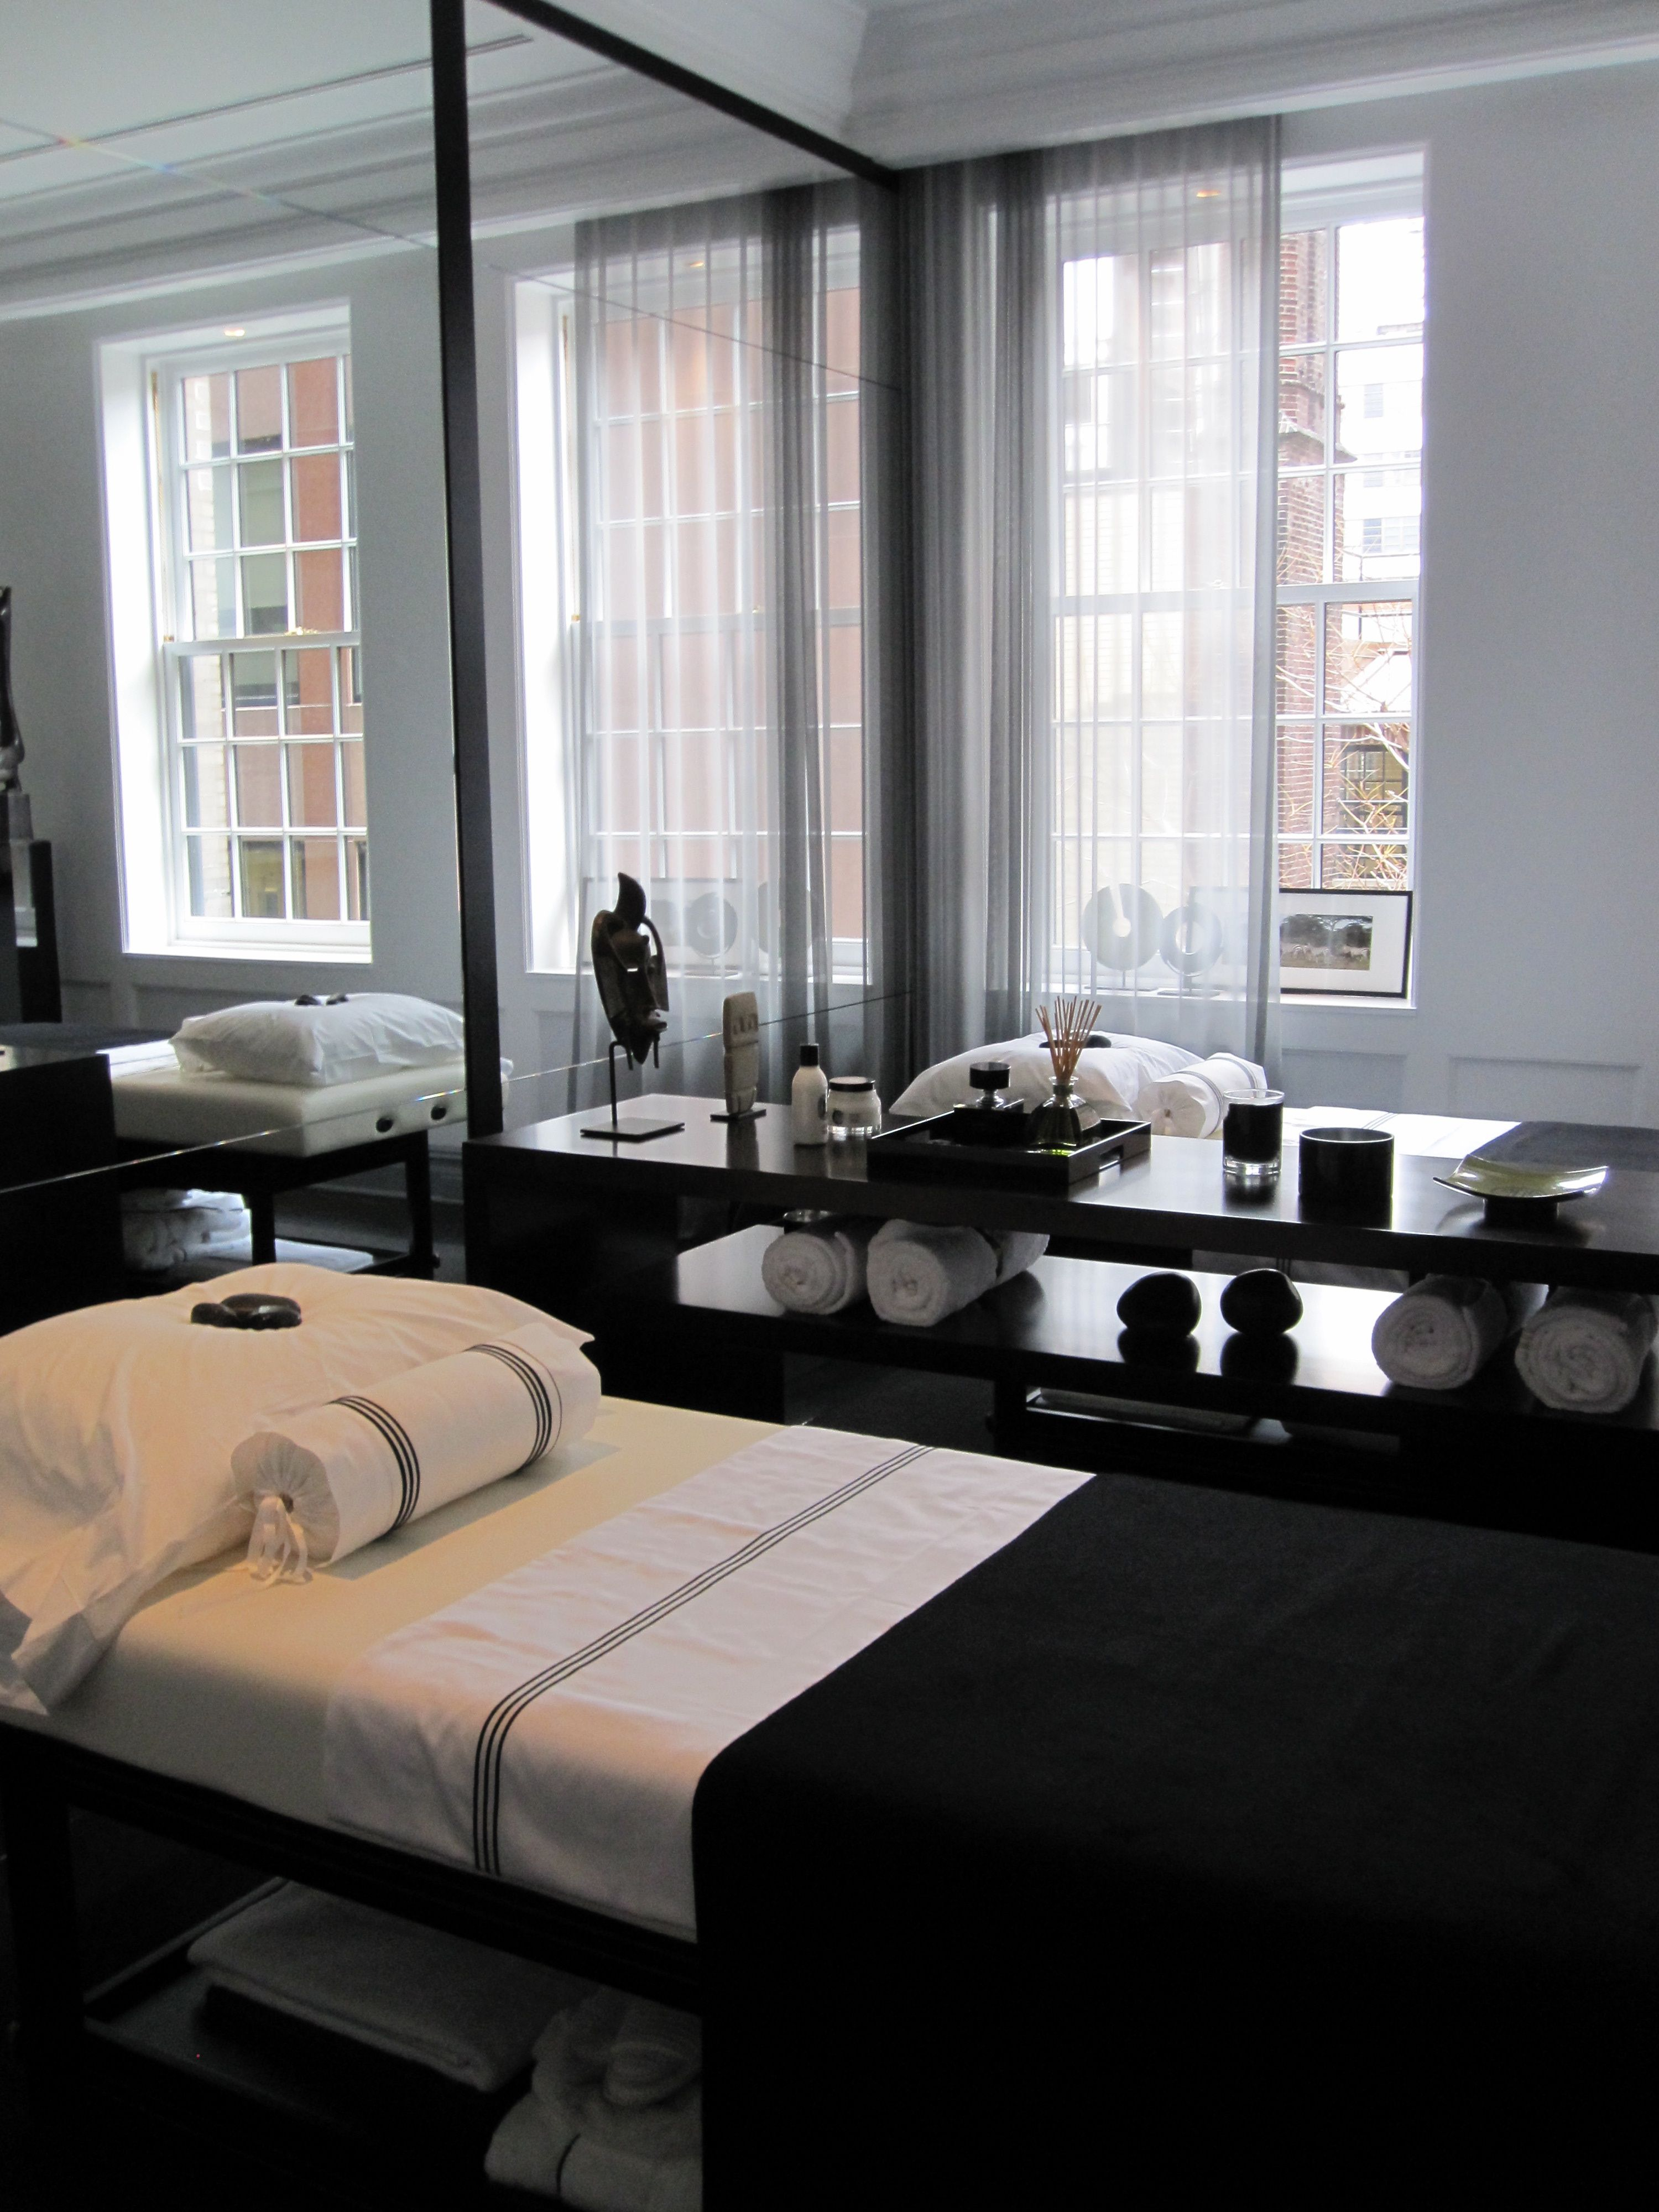 Massage Therapy Room Design Ideas: Black & White Massage Room! Come To Fulcher's Therapeutic